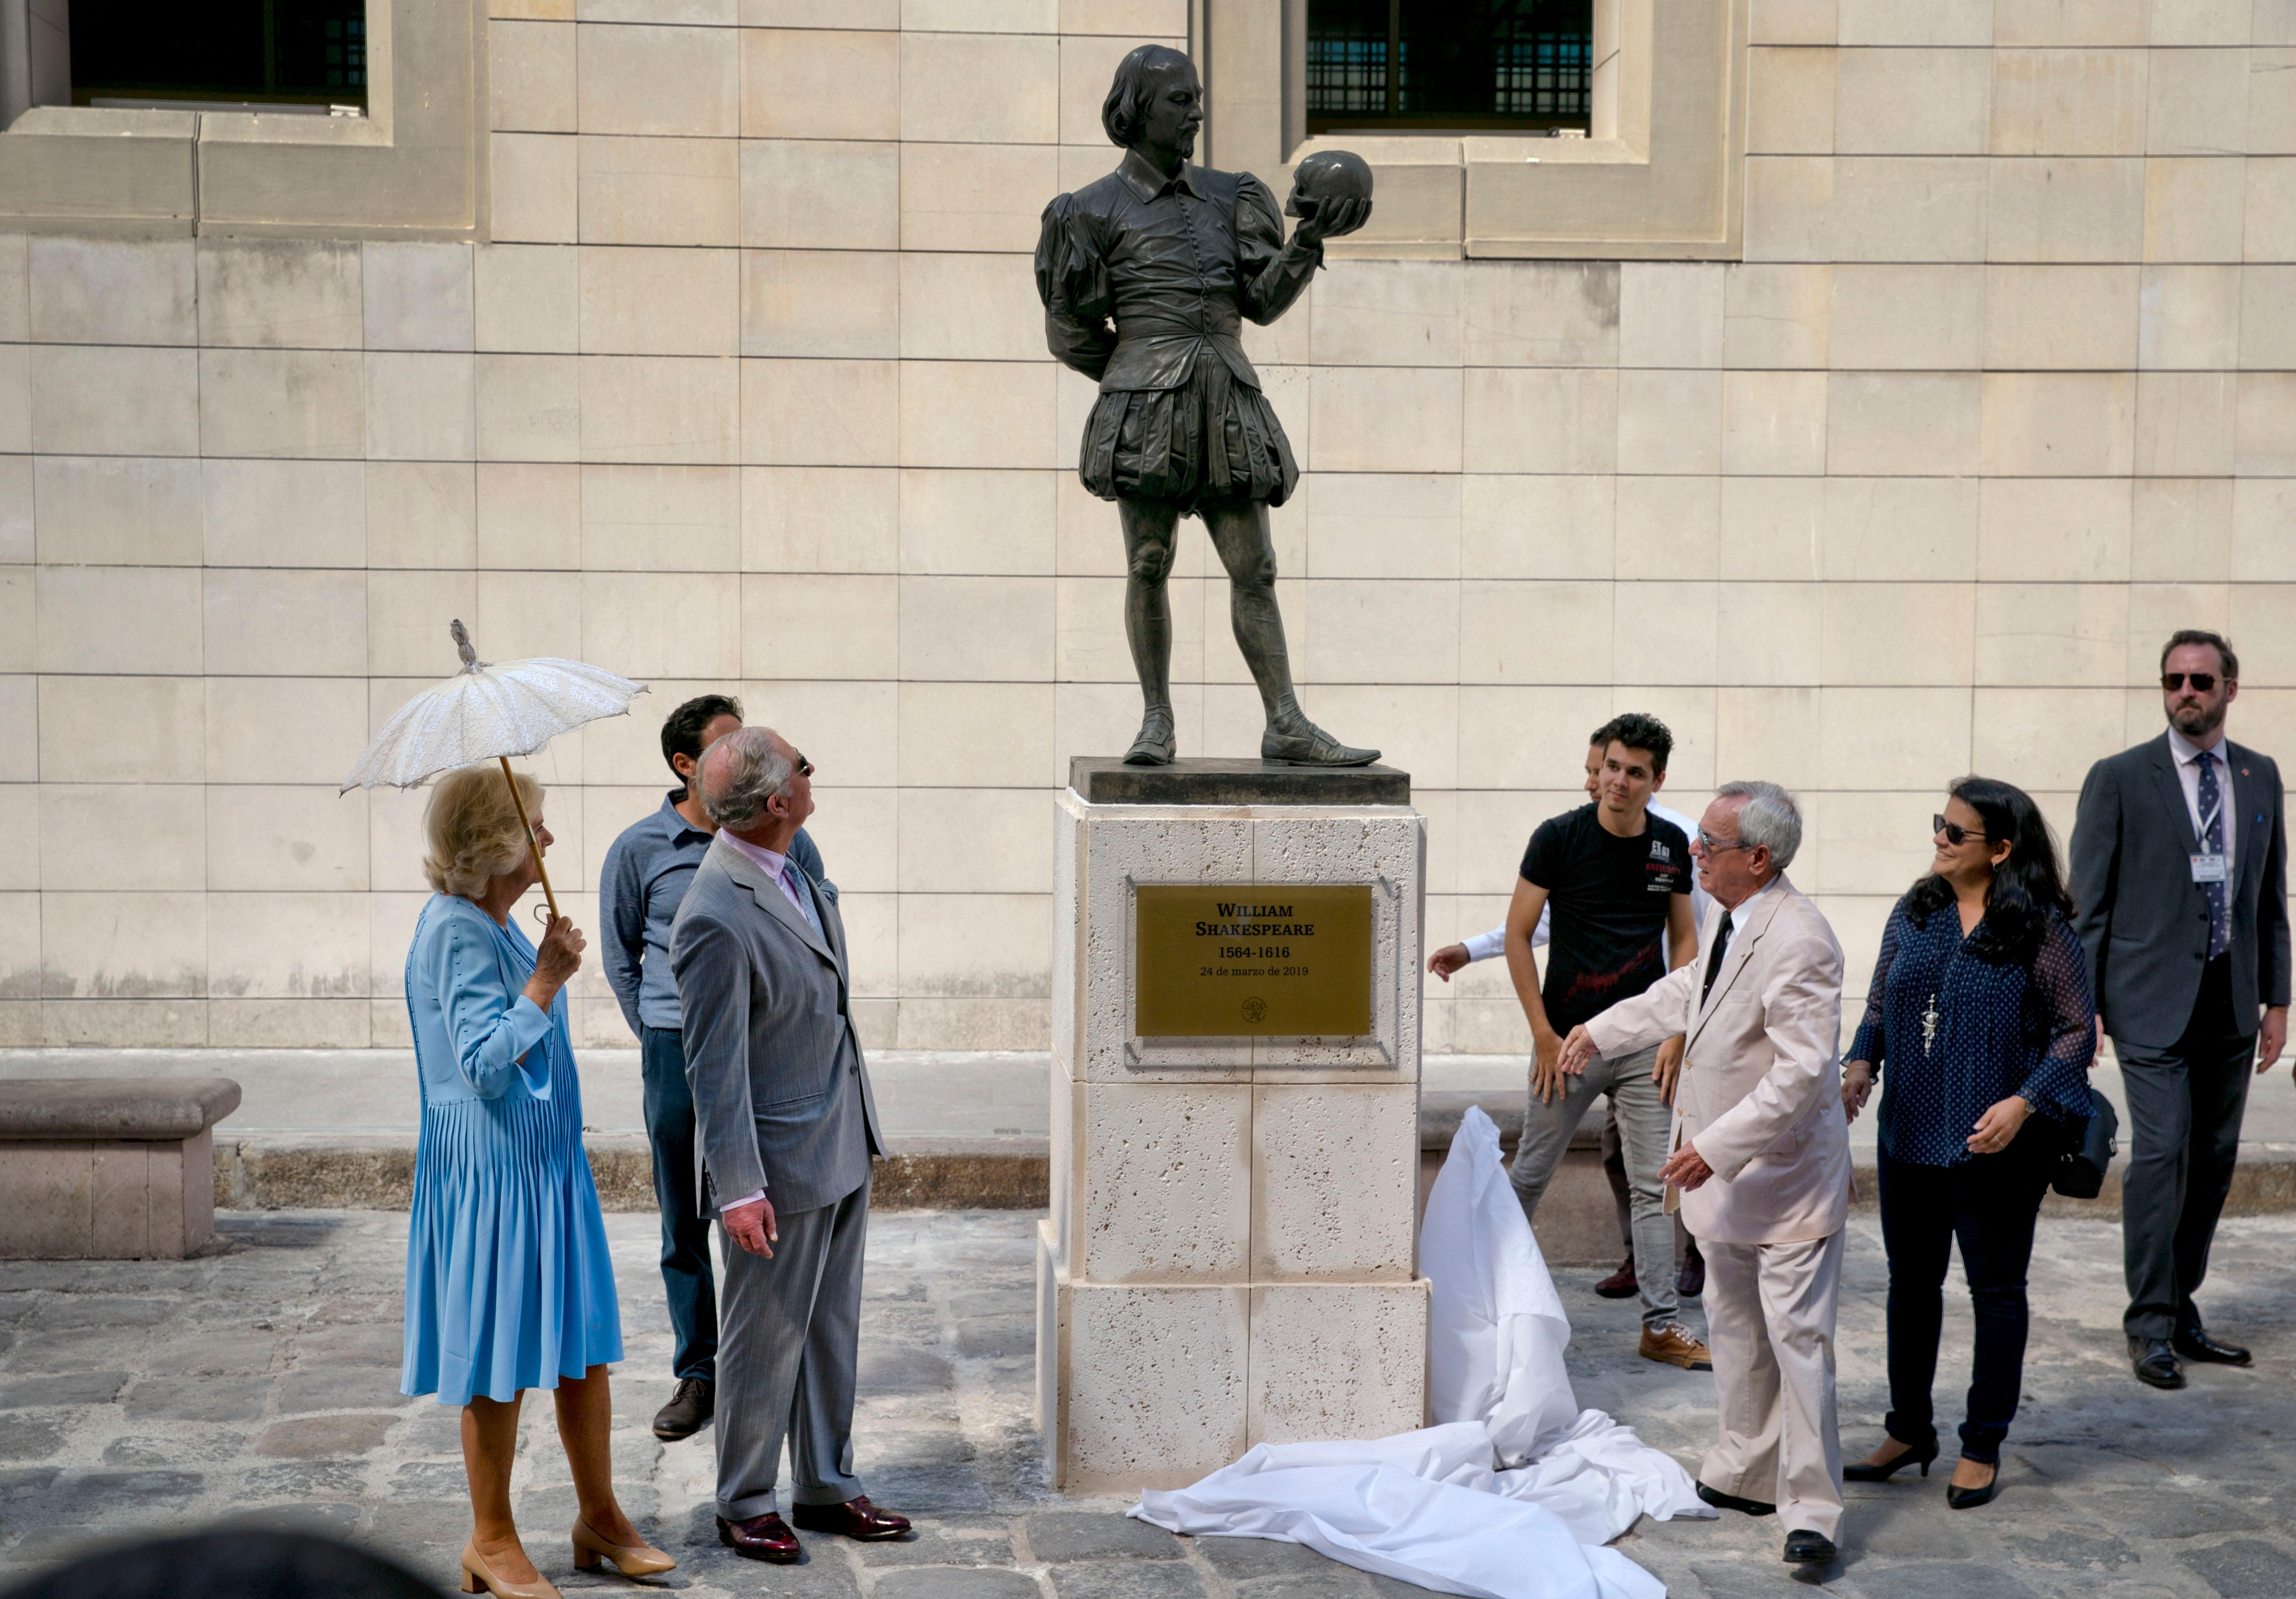 Britain's Prince Charles, the Prince of Wales, second from left, and his wife Camilla, Duchess of Cornwall, with umbrella, reveal a statue of William Shakespeare during a guided tour by City Historian Eusebio Leal, front right, as they tour the historic area of Havana, Cuba, Monday, March 25, 2019. (AP Photo/Ramon Espinosa)